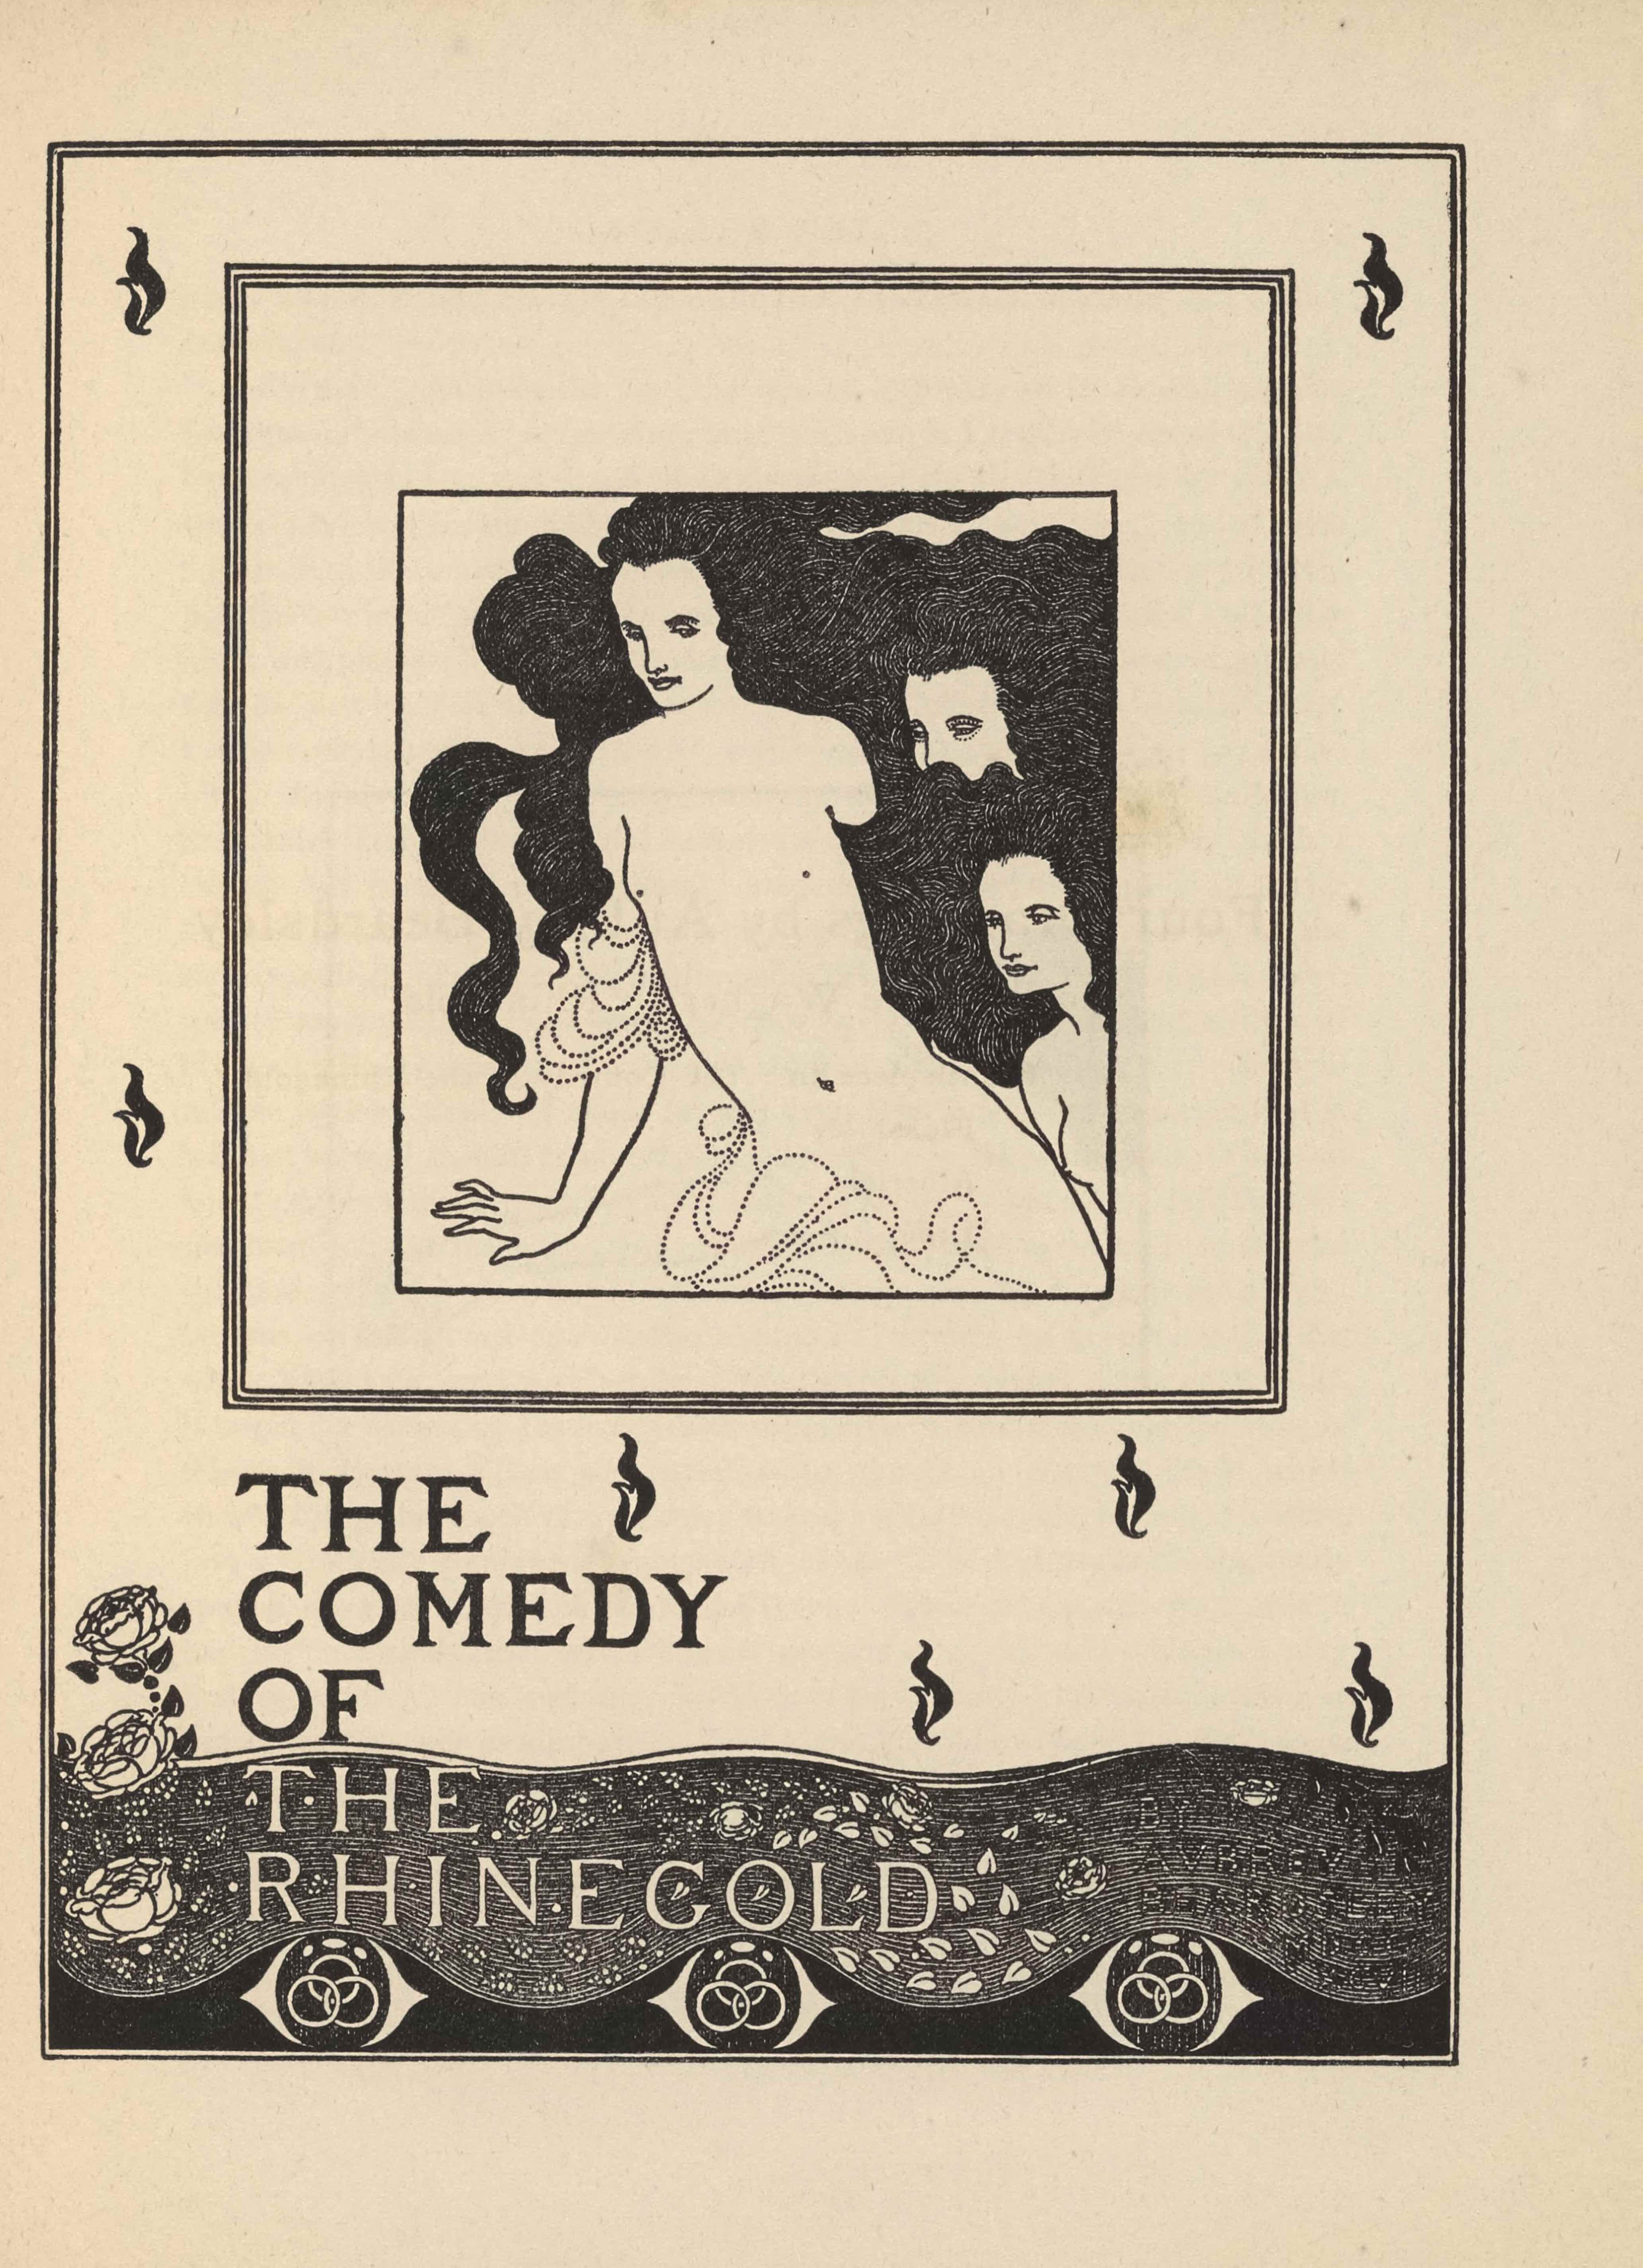 """The framed frontispiece, in portrait orientation, combines a line-block reproduction of Beardsley's pen-and-ink design with letterpress. The frontispiece includes the opera's name in the bottom left corner of the page, it reads: """"THE COMEDY OF THE RHINEGOLD"""" [caps]. The design presents as a stage curtain, with the publishing information on the scalloped decorated bottom edge and the illustration set into a frame on the face of the curtain, surrounded by flame-like decorations. The bottom edge of the curtain, which occupies about a third of the image, is divided into two parts; the lower half is white and the upper half is white. The opera's title is separated out with one word on each line so that they are stacked on top of one another. """"THE COMEDY OF"""" [caps] is inked in black in the white section, whereas """"THE RHINEGOLD"""" [caps] is inked in white in the black section. At the very bottom edge, below the scalloped fringe of the curtain, there is an ornament frieze created out of three repeated shapes. The decoration looks like an eye with three interlinked hoops where the pupil ought to be. On the left edge, moving up from the fringe to the curtain, there are three roses. Within the framed image on the centre of the curtain there are three figures. The central figure is nude save for fabric hanging off their right elbow and more fabric which passes in front of their groin. The figure is androgynous. They have their right hand extended out and down. Their hair is black and takes up much of the background. There is a second androgynous figure by the first's right shoulder, though only the top half of this figure's face is visible and nothing else. The third androgynous nude figure stands on the right edge of the page so that only their head and chest are visible. Their black hair blends into the black hair of the first figure."""